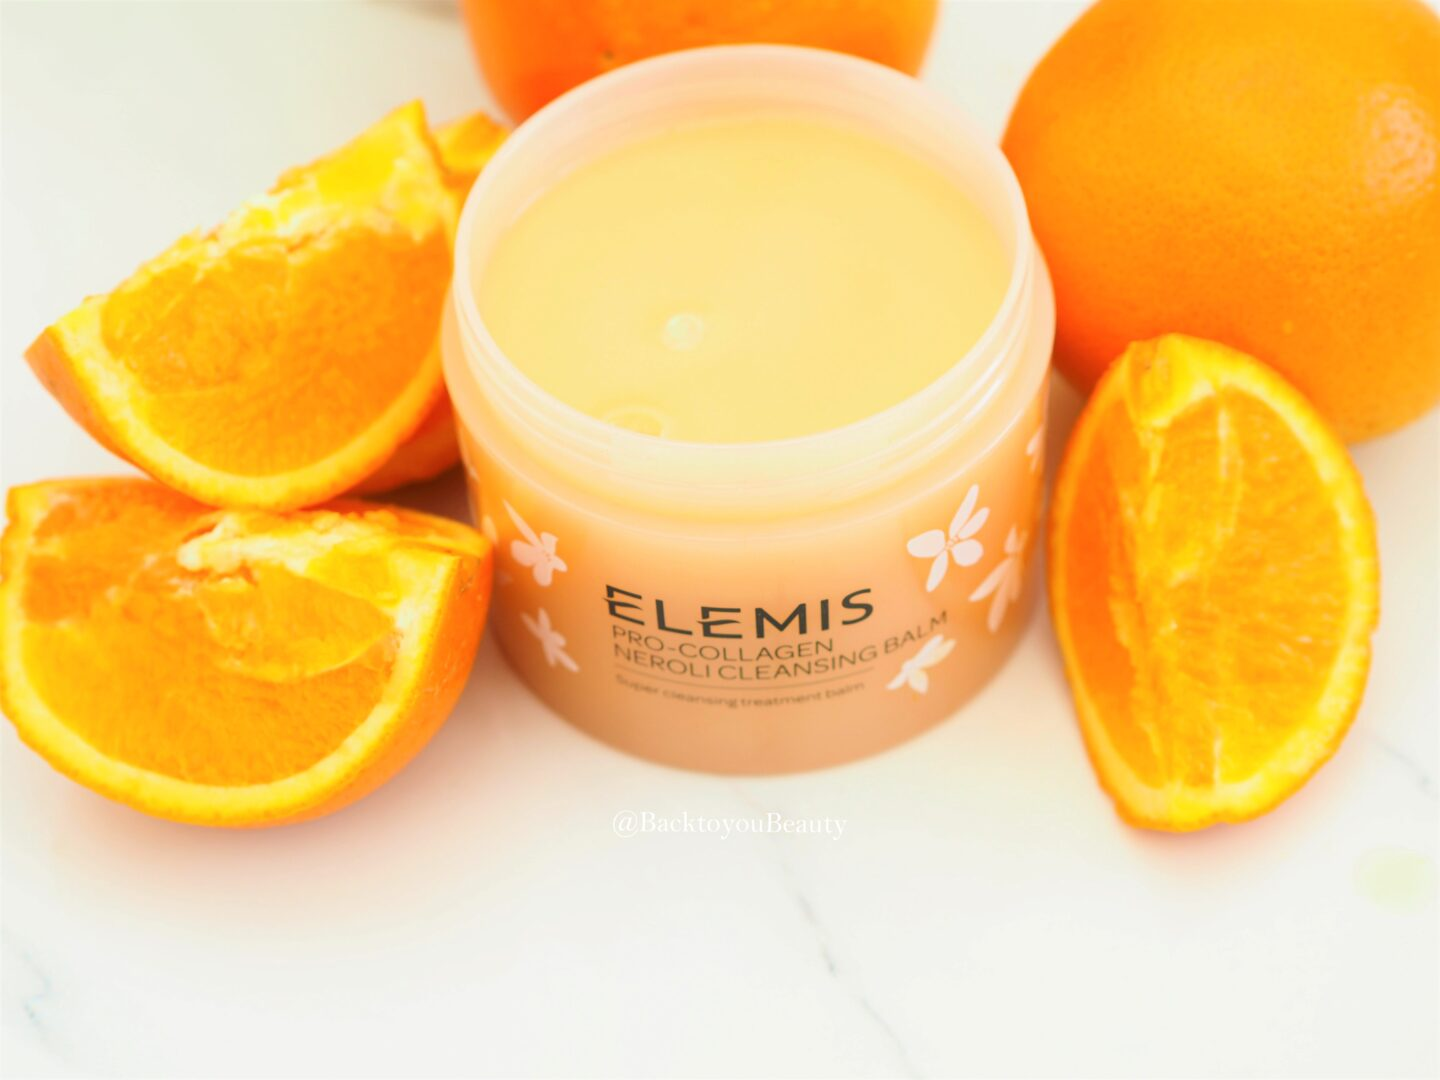 Elemis Pro-Collagen Neroli Cleansing Balm